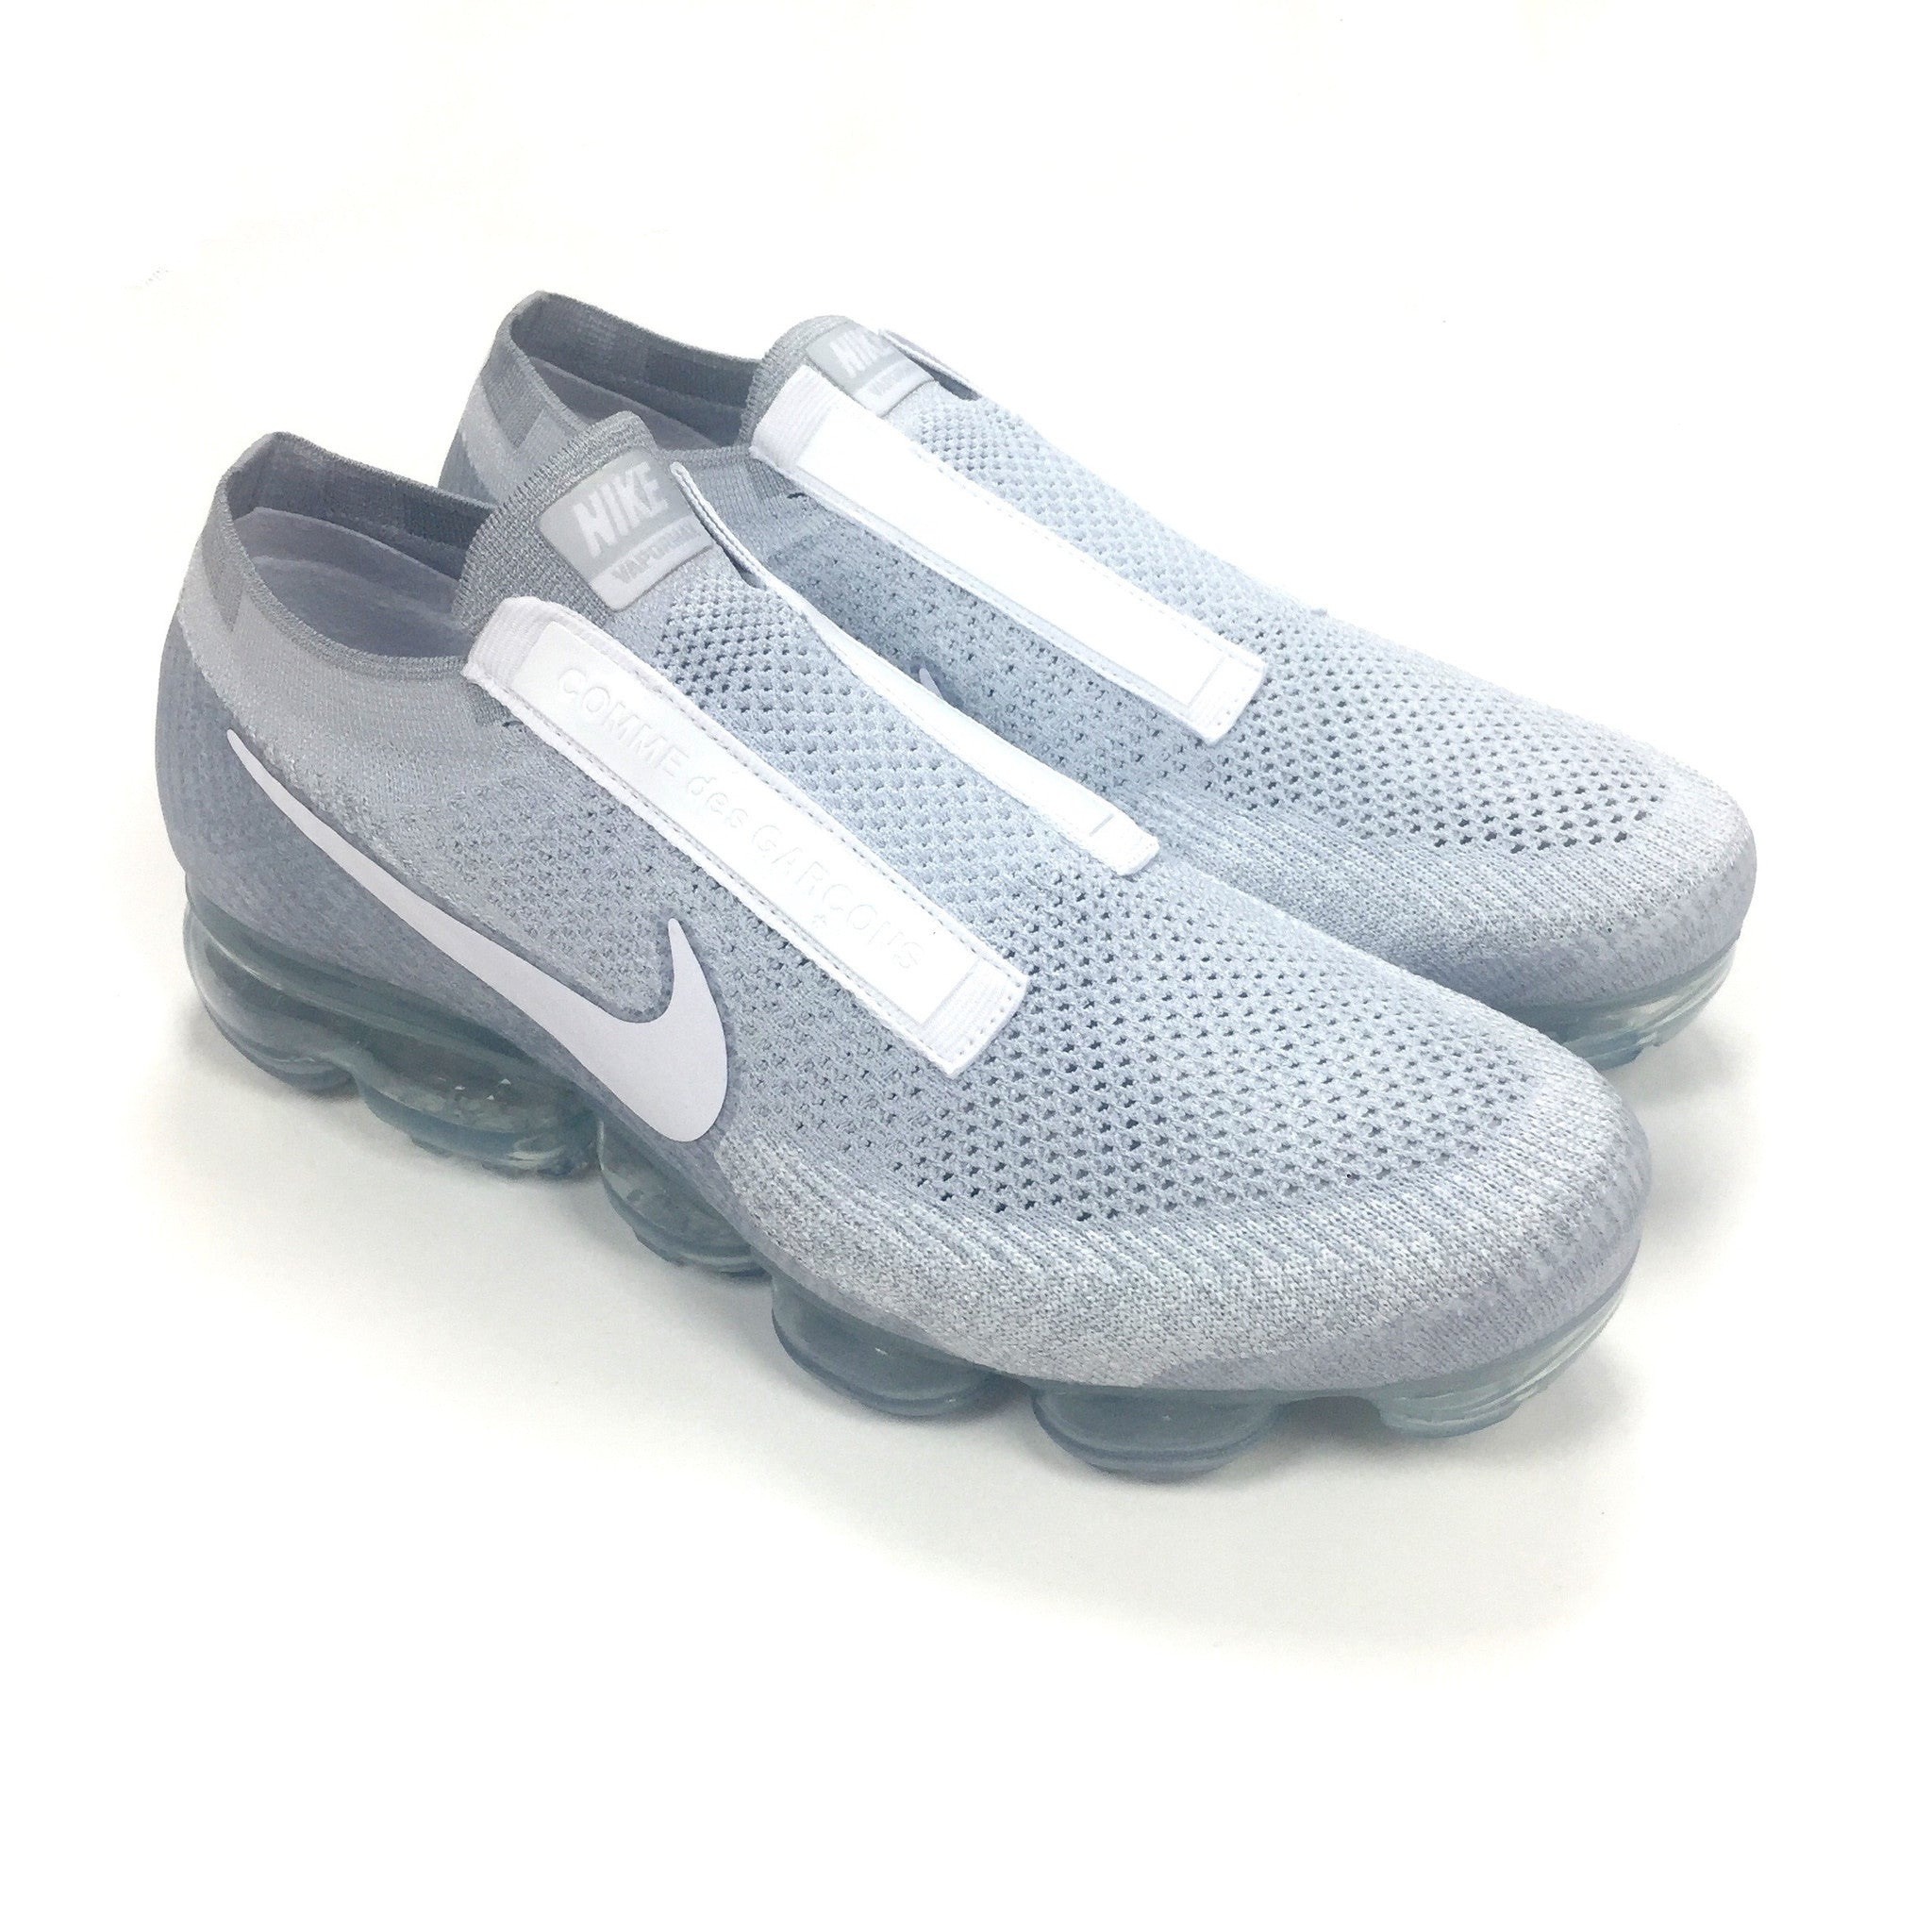 info for 8f852 c1b0a Comme des Garcons x Nike - White Air Vapormax FK CDG ...